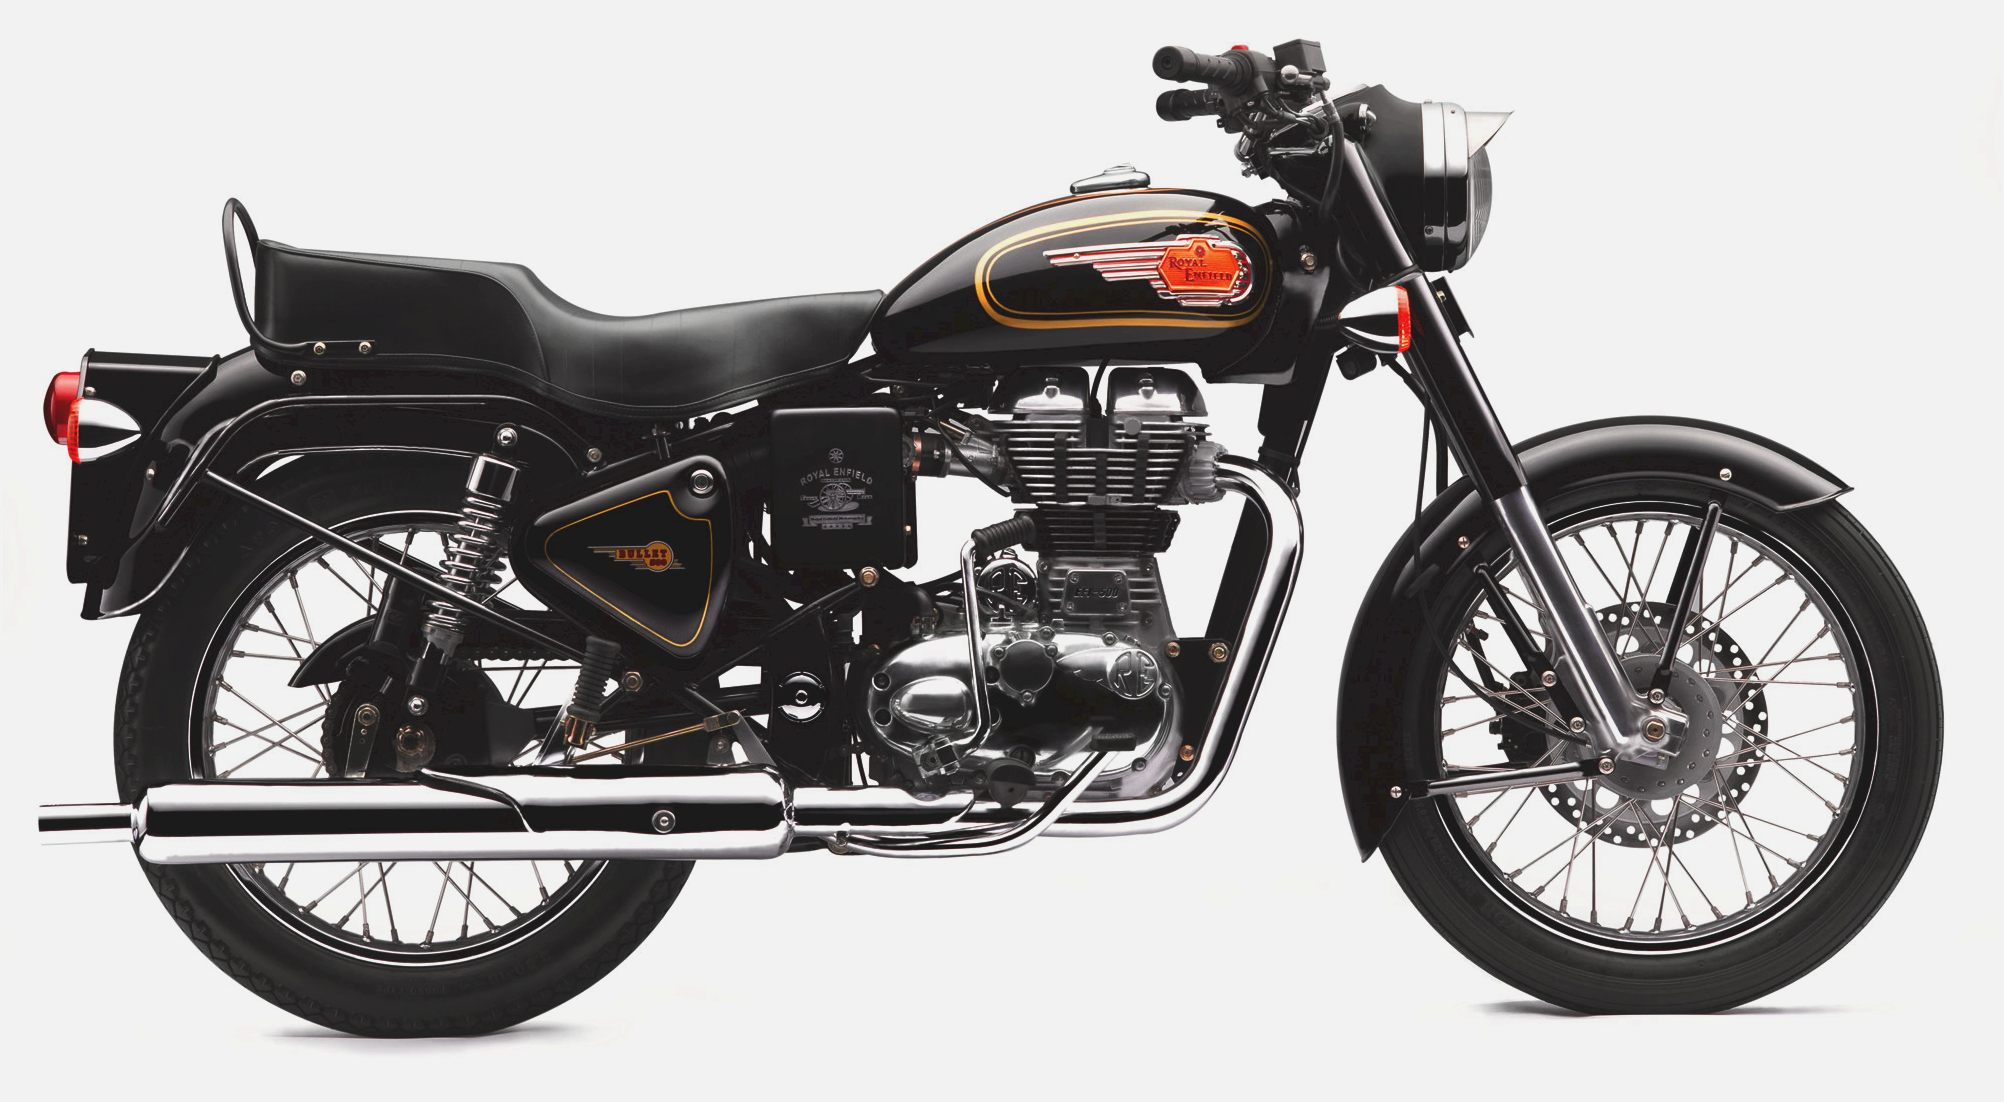 Royal Enfield Bullet 500 Classic images #127678